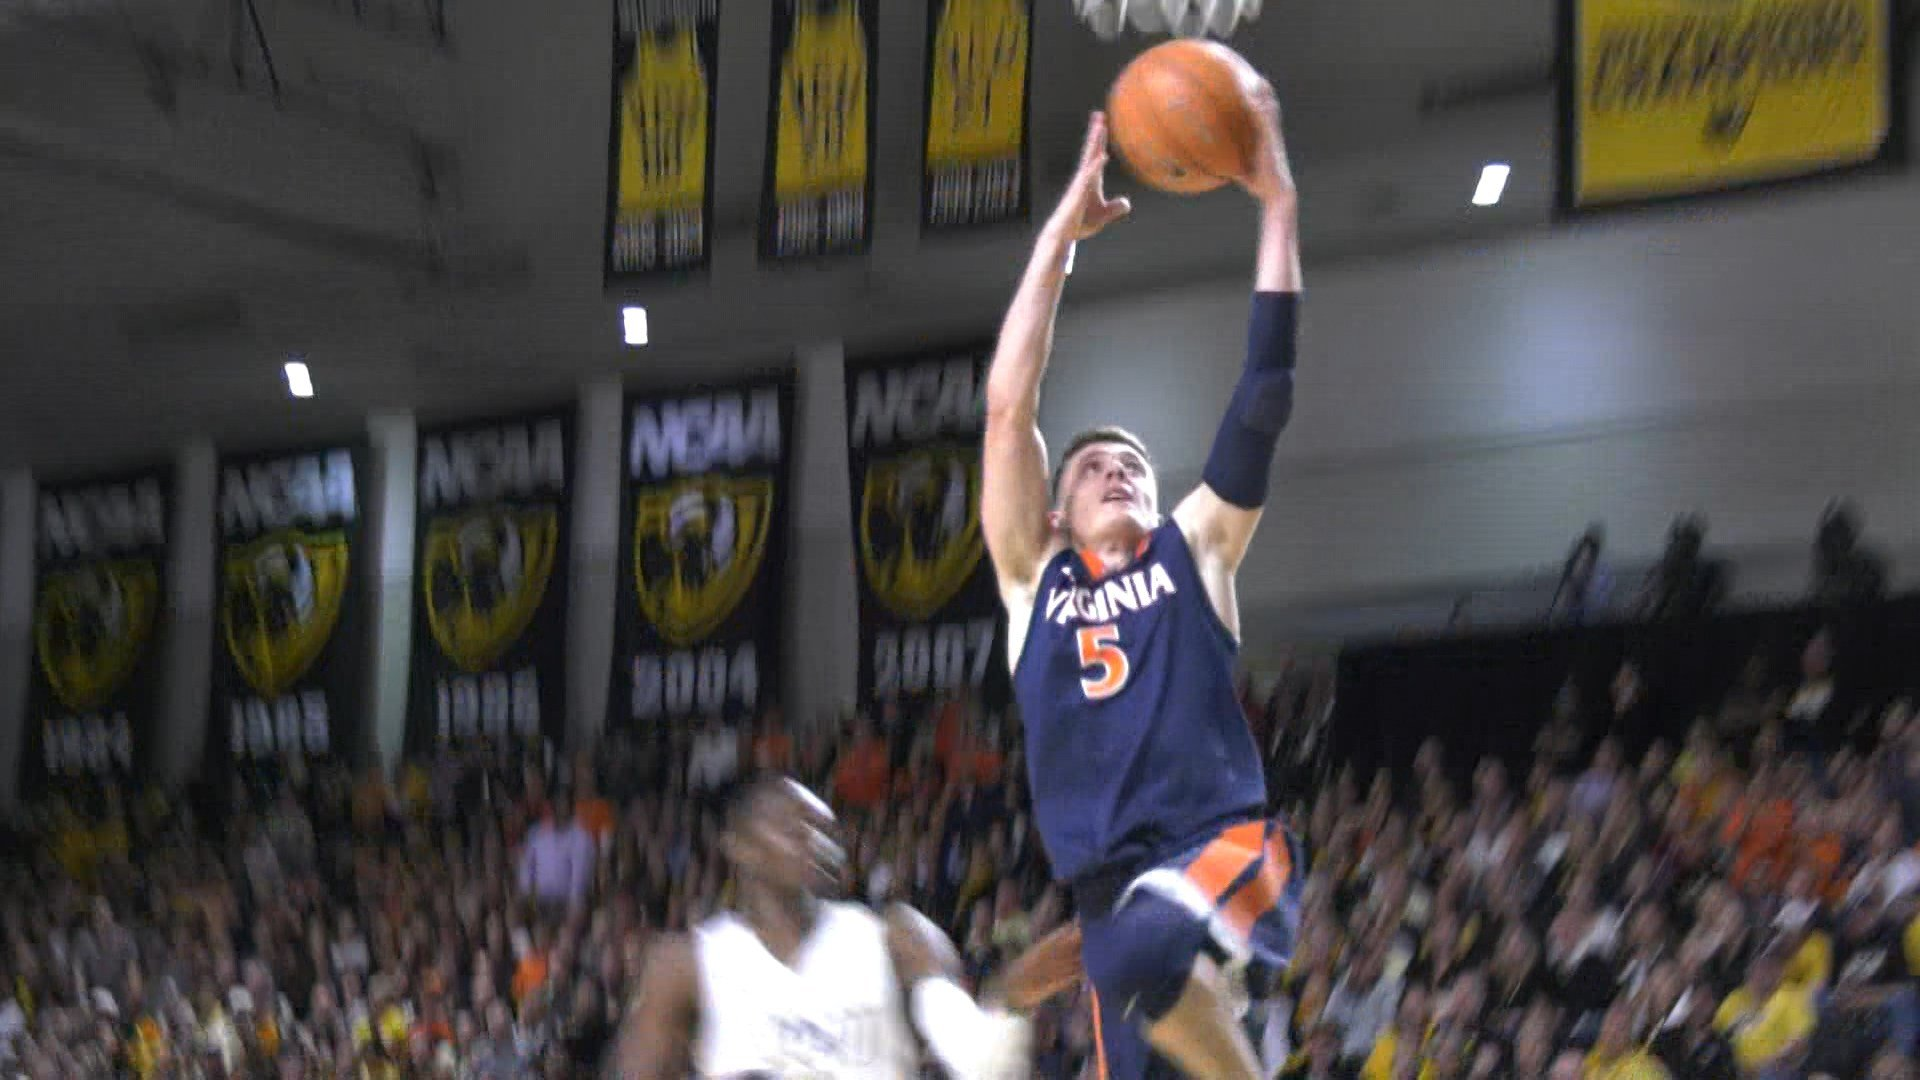 Sophomore Kyle Guy scored a career-high 29 points in UVa's 76-67 win